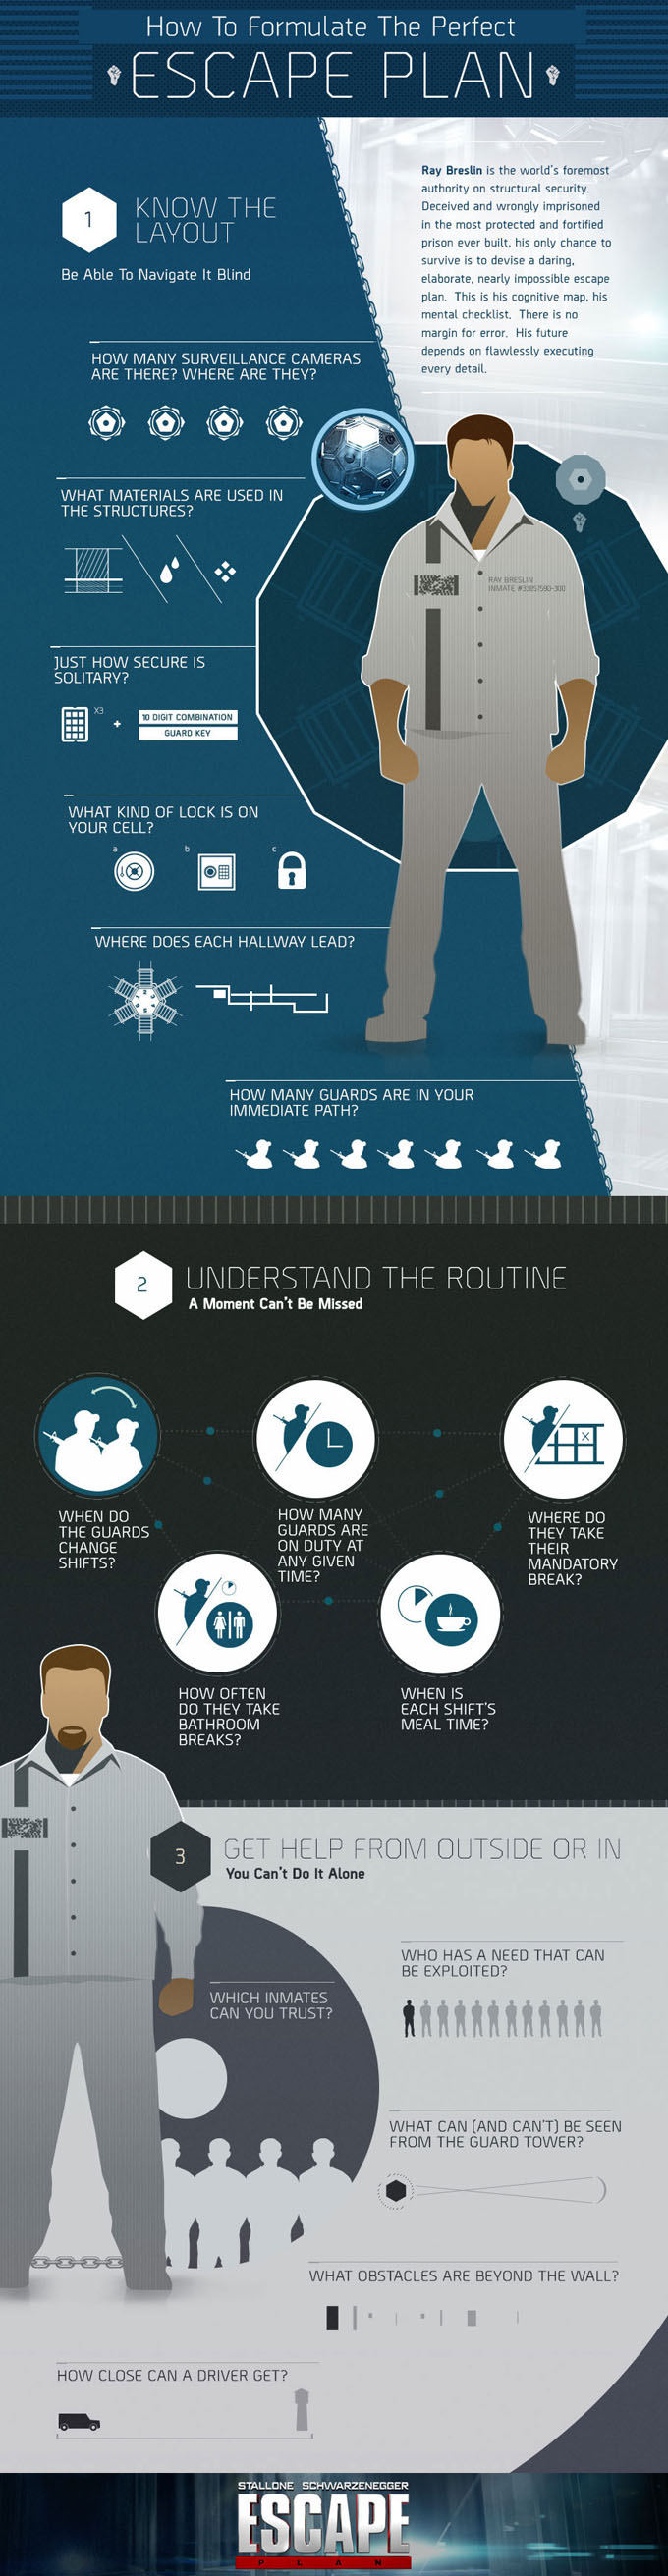 Escape Plan Infographic